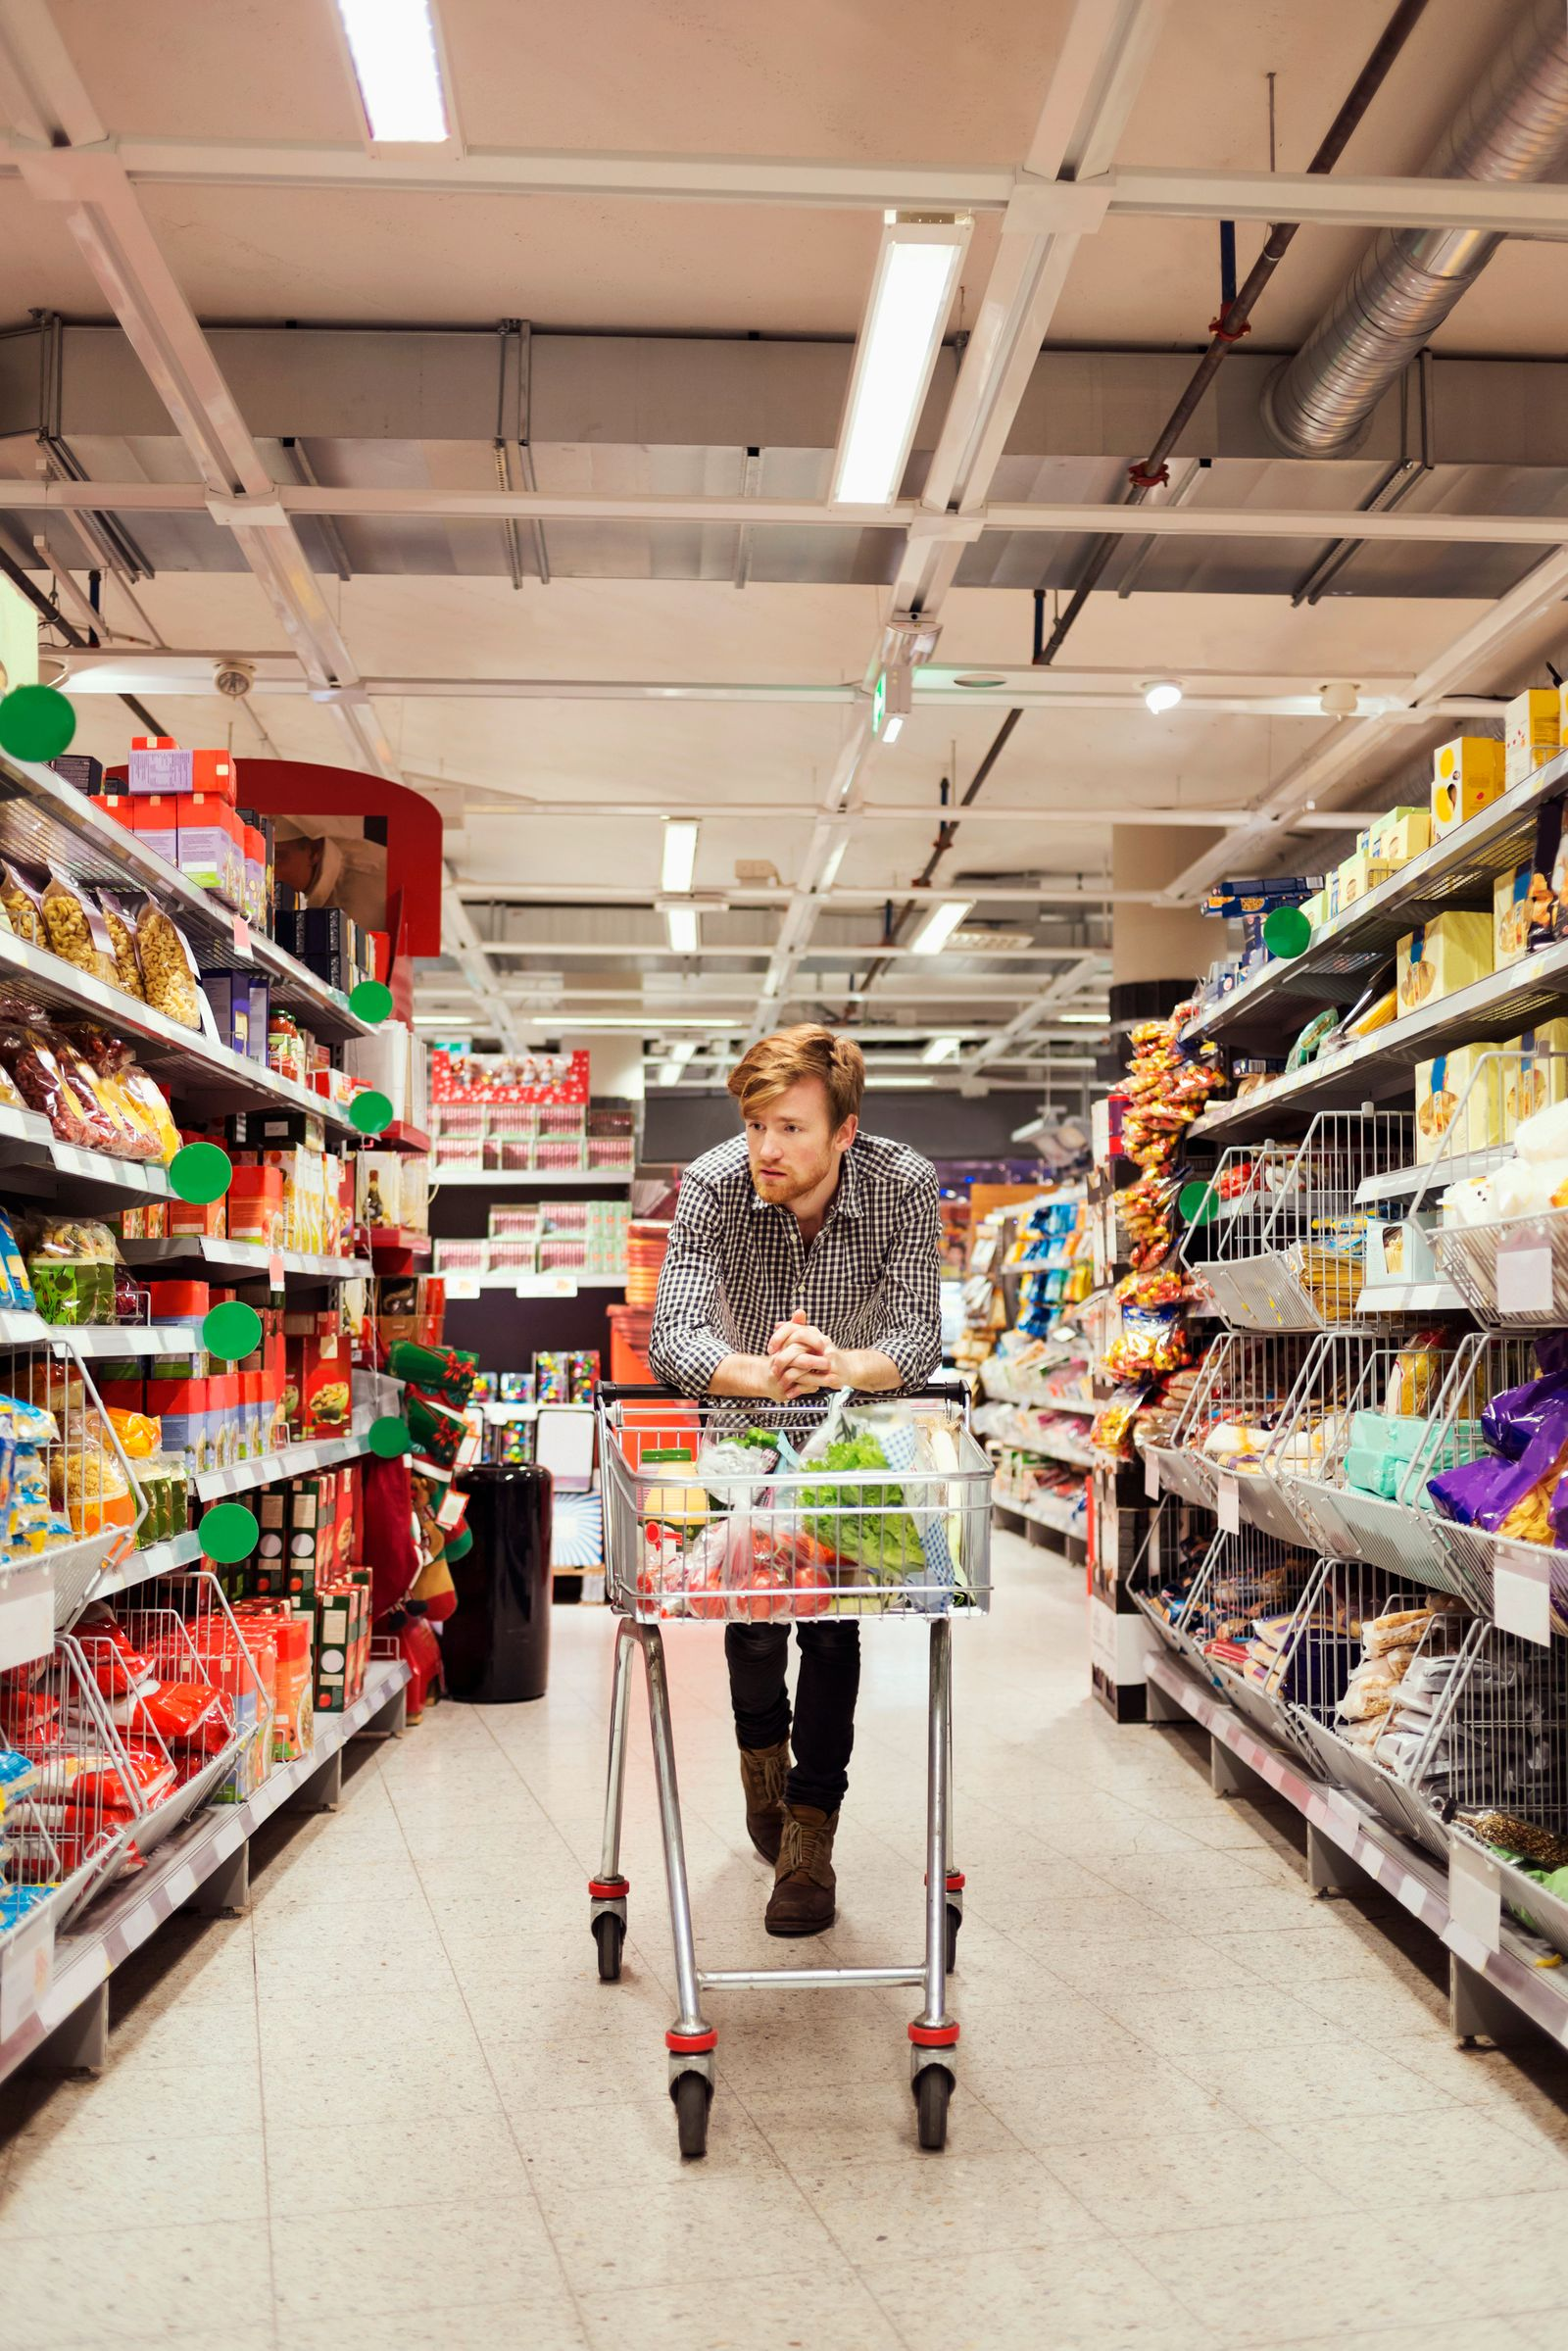 Young man leaning on shopping cart at supermarket aisle